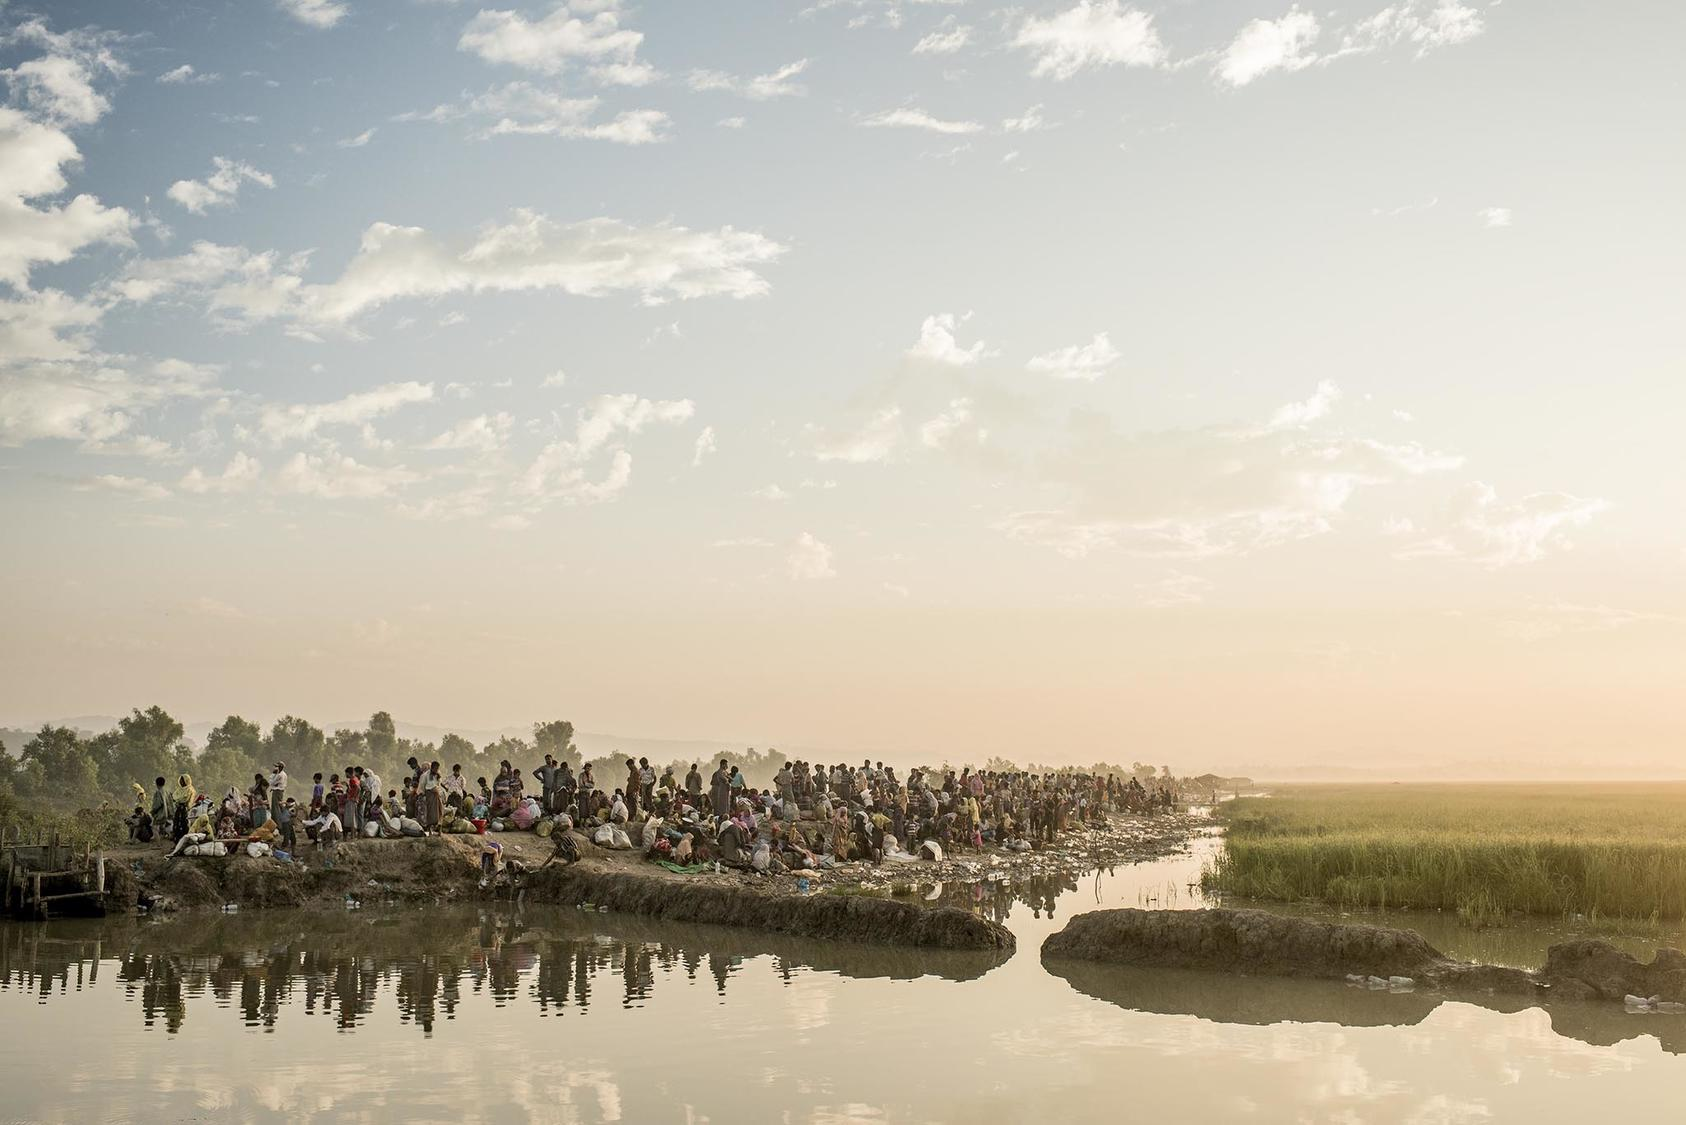 Rohingya refugees after crossing from Burma into Bangladesh near Anjuman Para. (Tomas Munita/The New York Times)